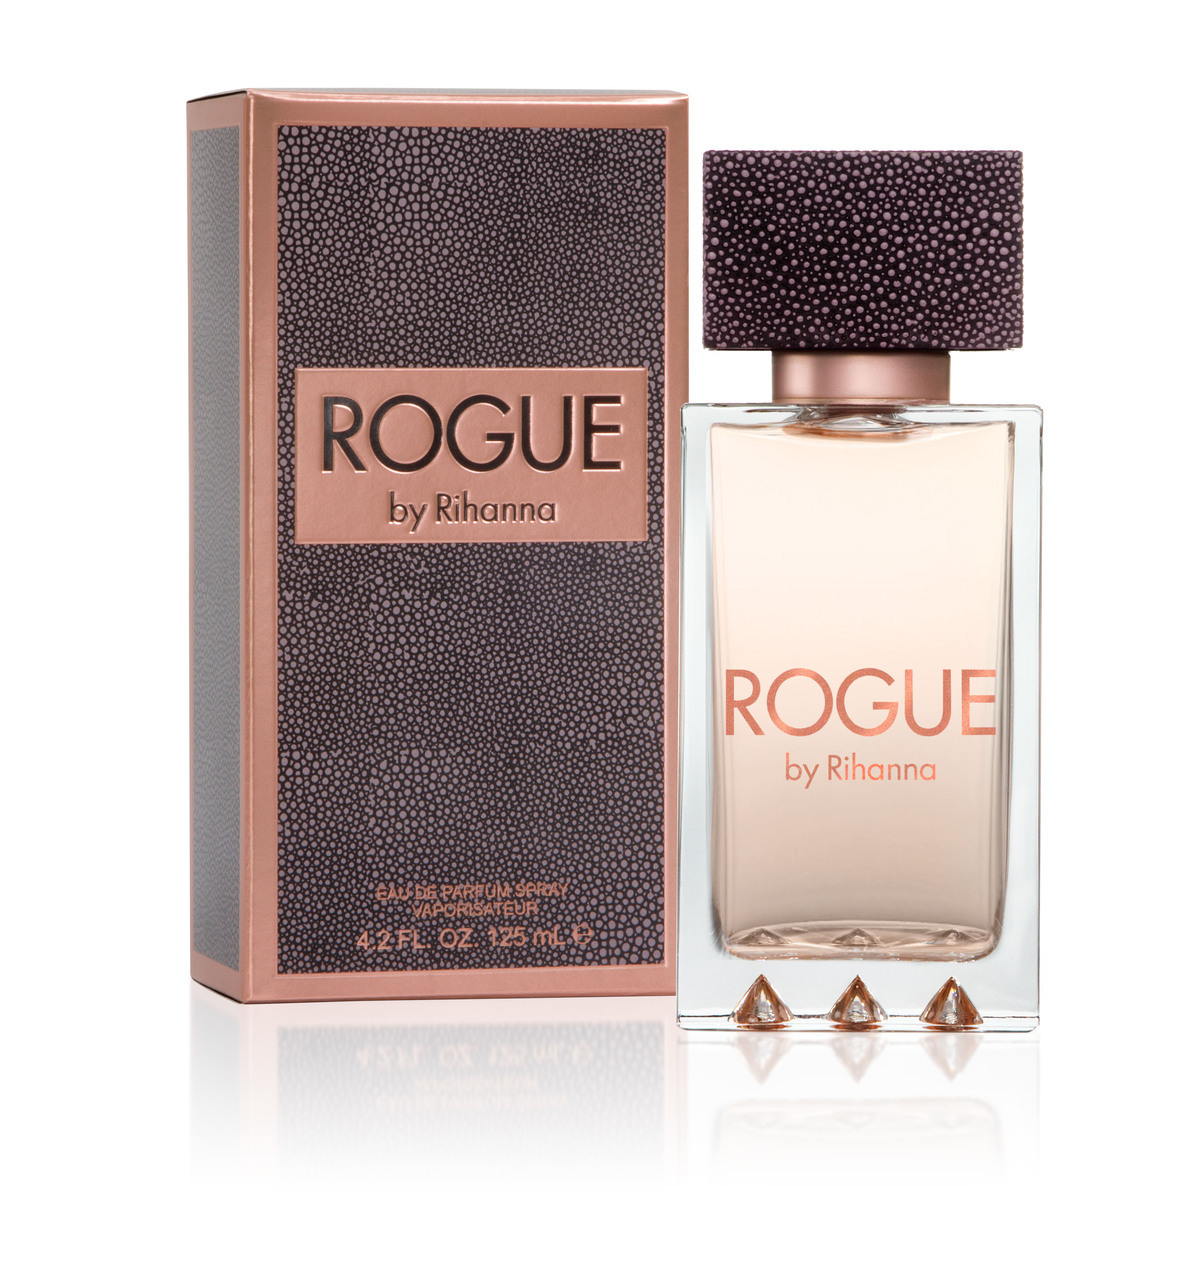 ROGUE BY RIHANNA 125ml EDP